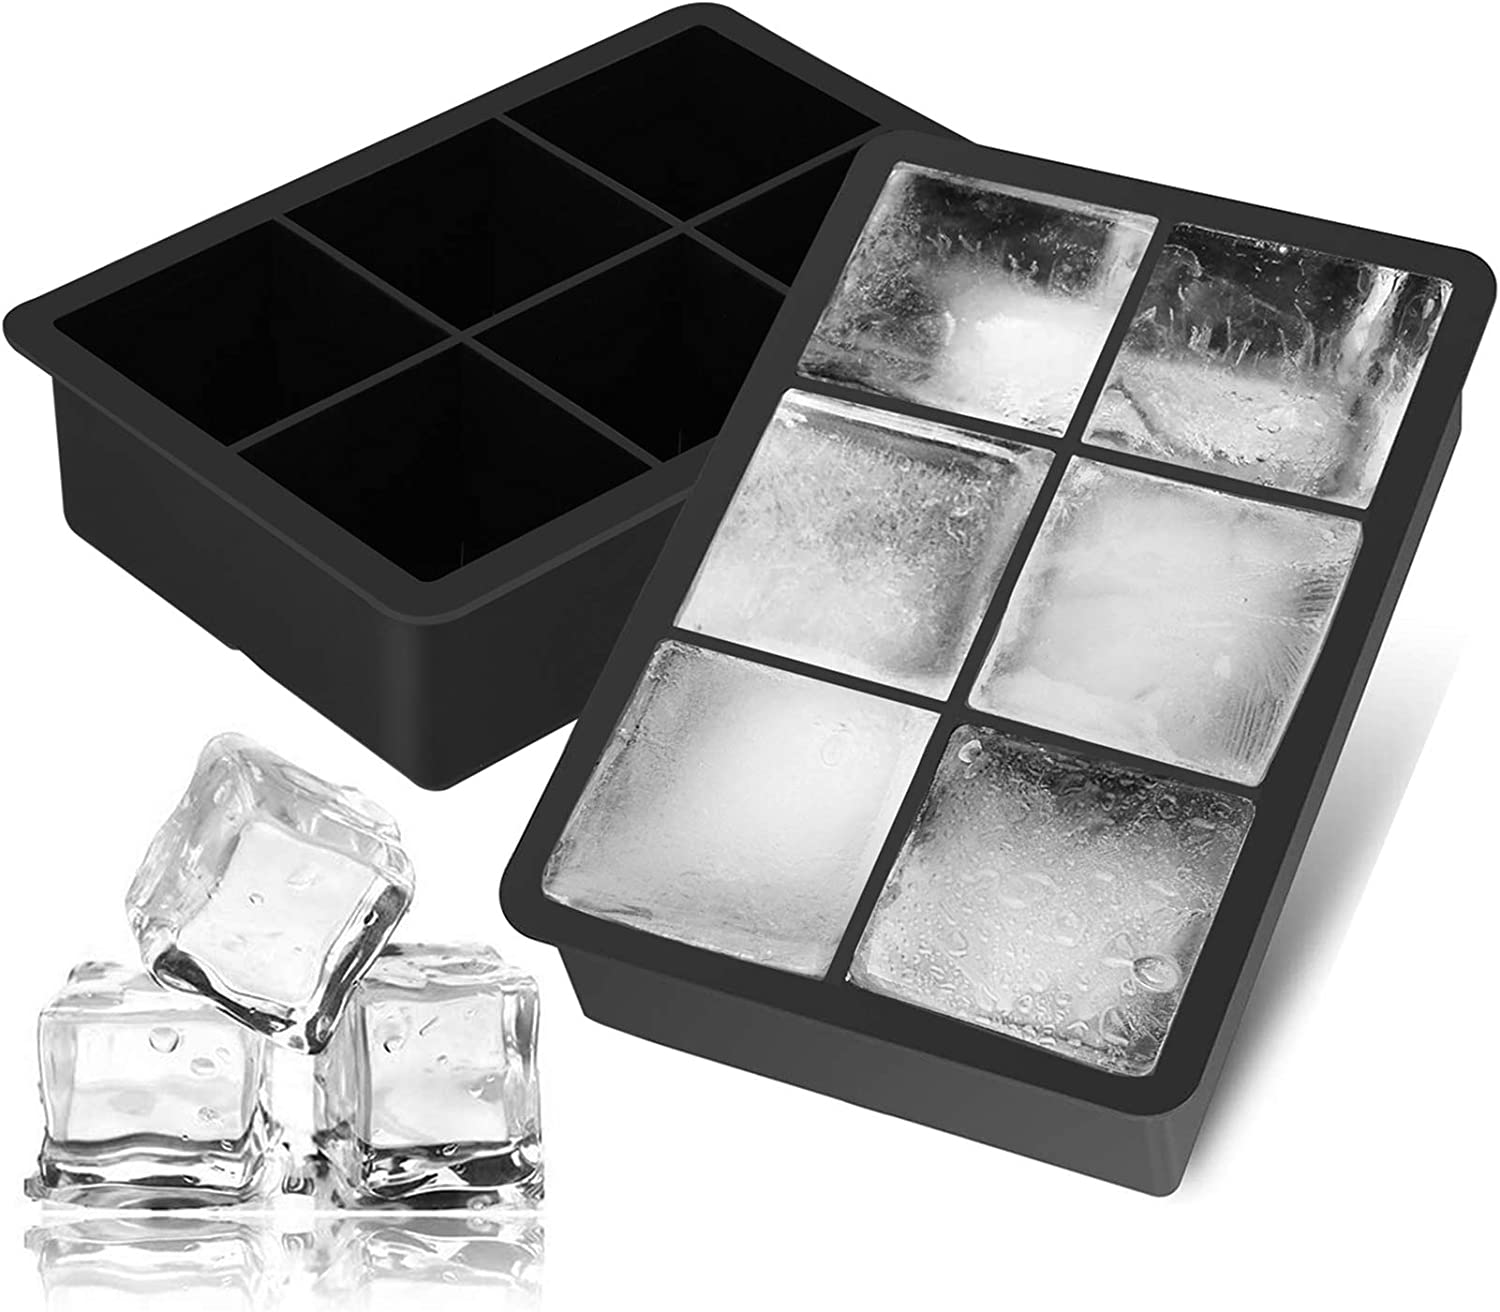 Ice Cube Trays 2 Pack, Morfone Silicone Ice Trays with Lid Easy-Release Flexible Large Square Ice Molds 6 Cubes per Tray for Whiskey, Cocktail, Soda, Baby Food, BPA Free and LFGB Certified